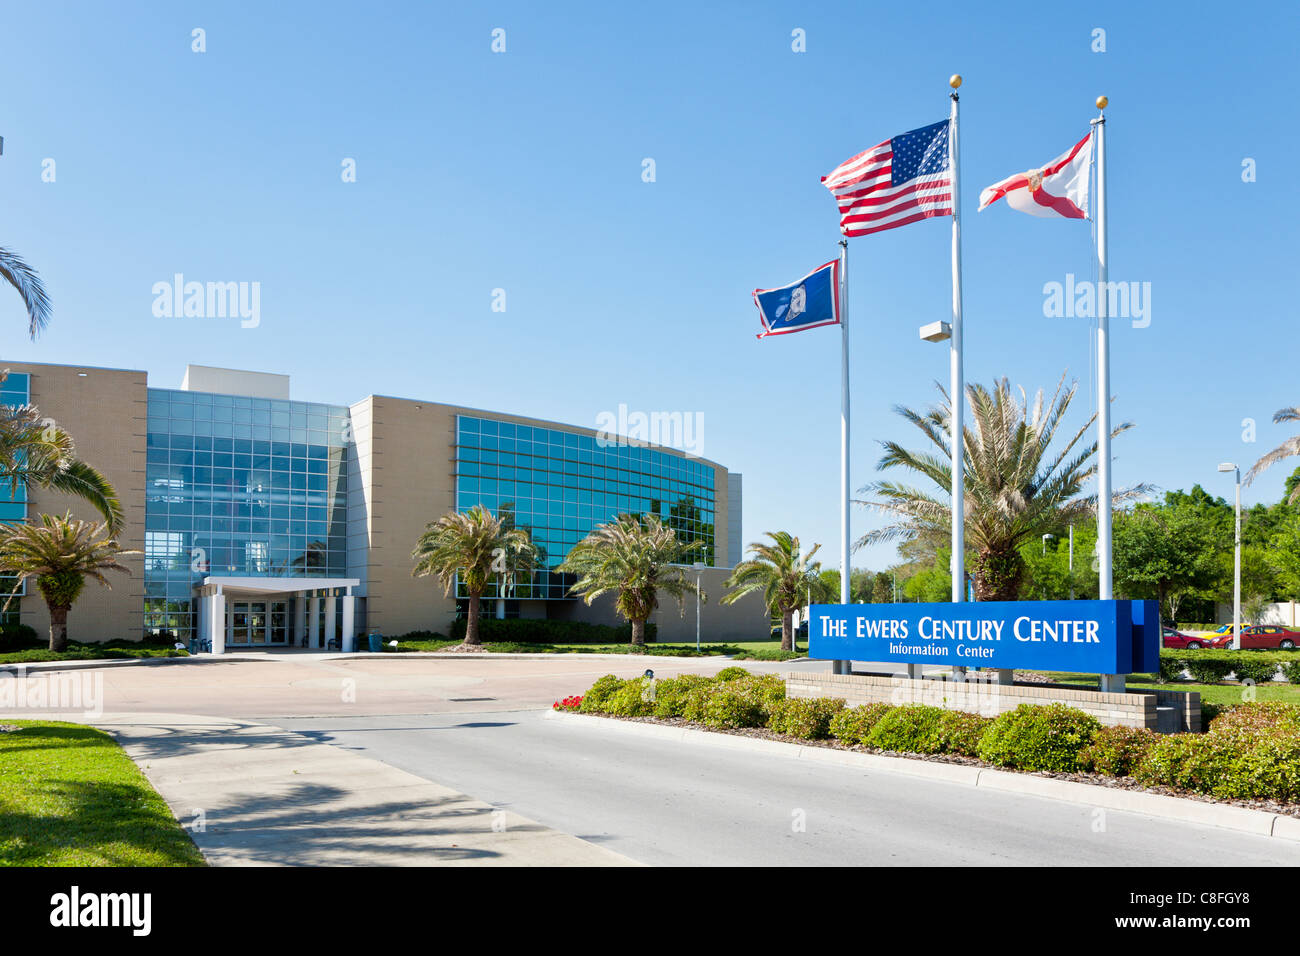 Entrance to The Ewers Centruy Center building at Central Florida College in Ocala Florida - Stock Image